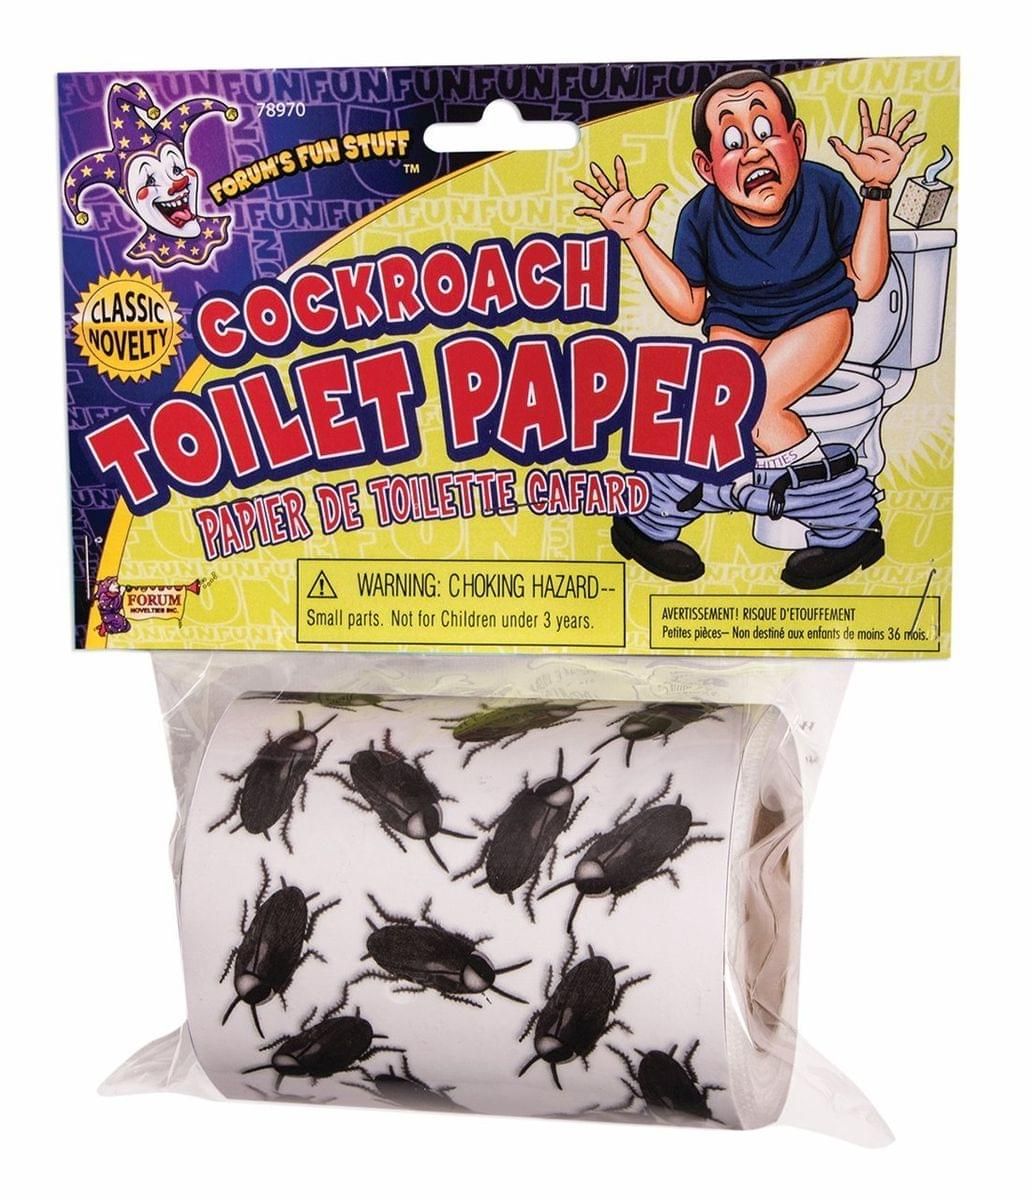 Cockroach Toilet Paper Halloween Décor